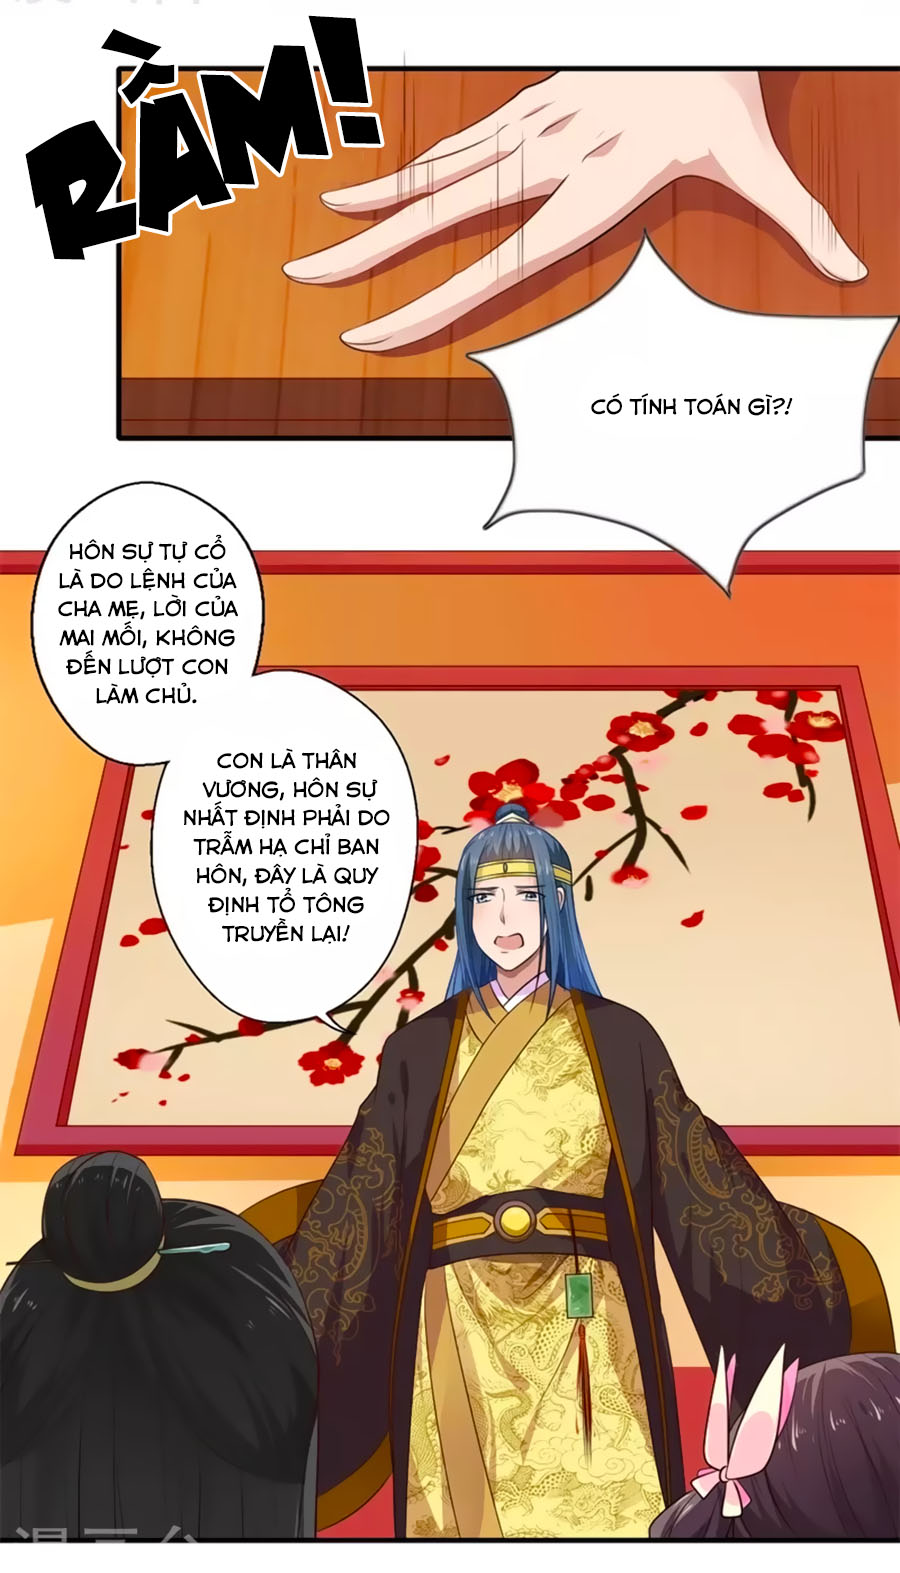 Khuynh Thế Y Phi Muốn Bỏ Chồng Chap 49 page 23